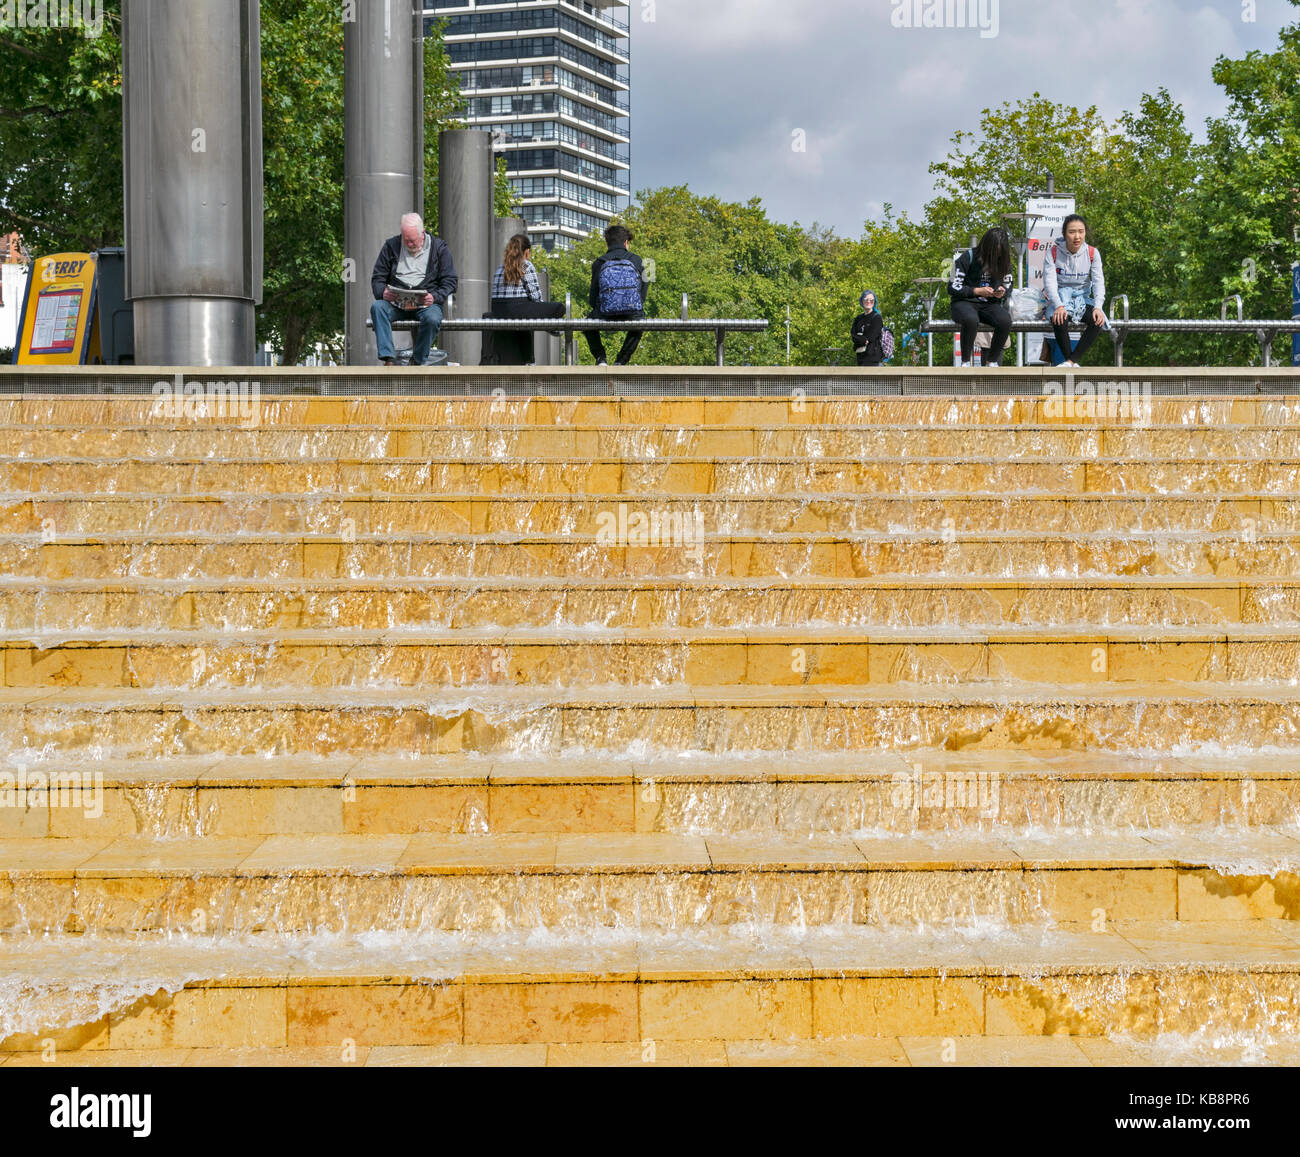 BRISTOL ENGLAND CITY CENTRE WESTERN DOCK HOTWELLS HARBOURSIDE STEPS WITH RUNNING WATER - Stock Image